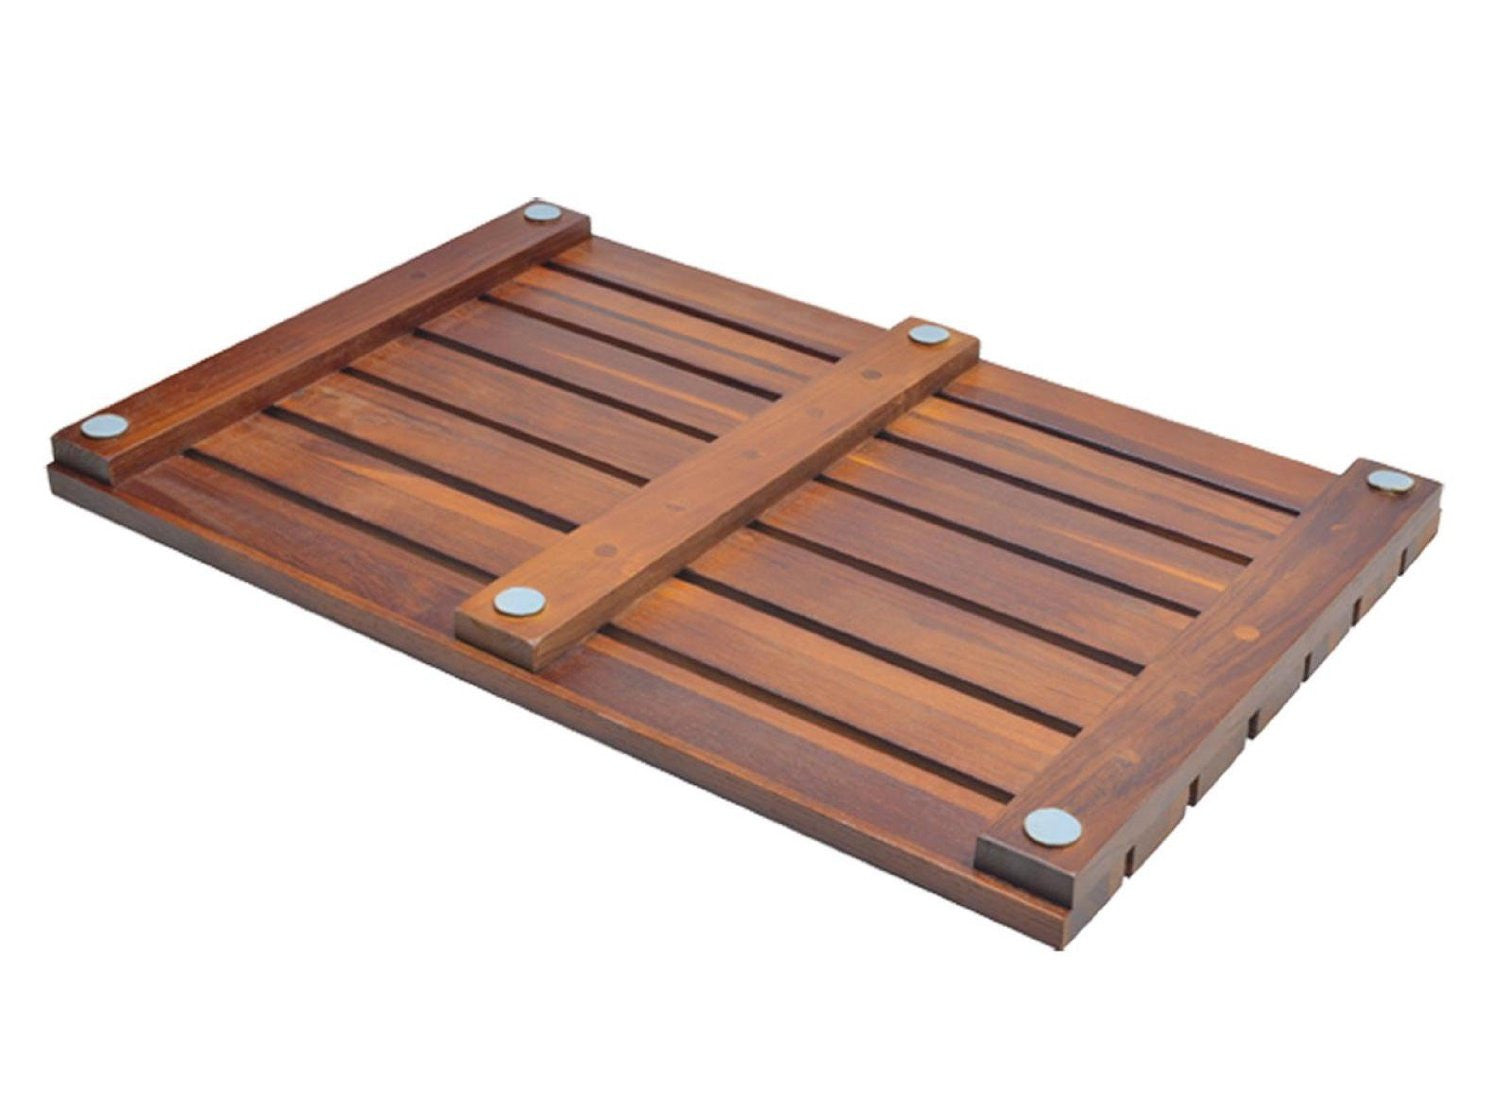 Design Teak Bath Mat handcrafted teak wood bath mat non slip feet for in and out the bottom of shower mat